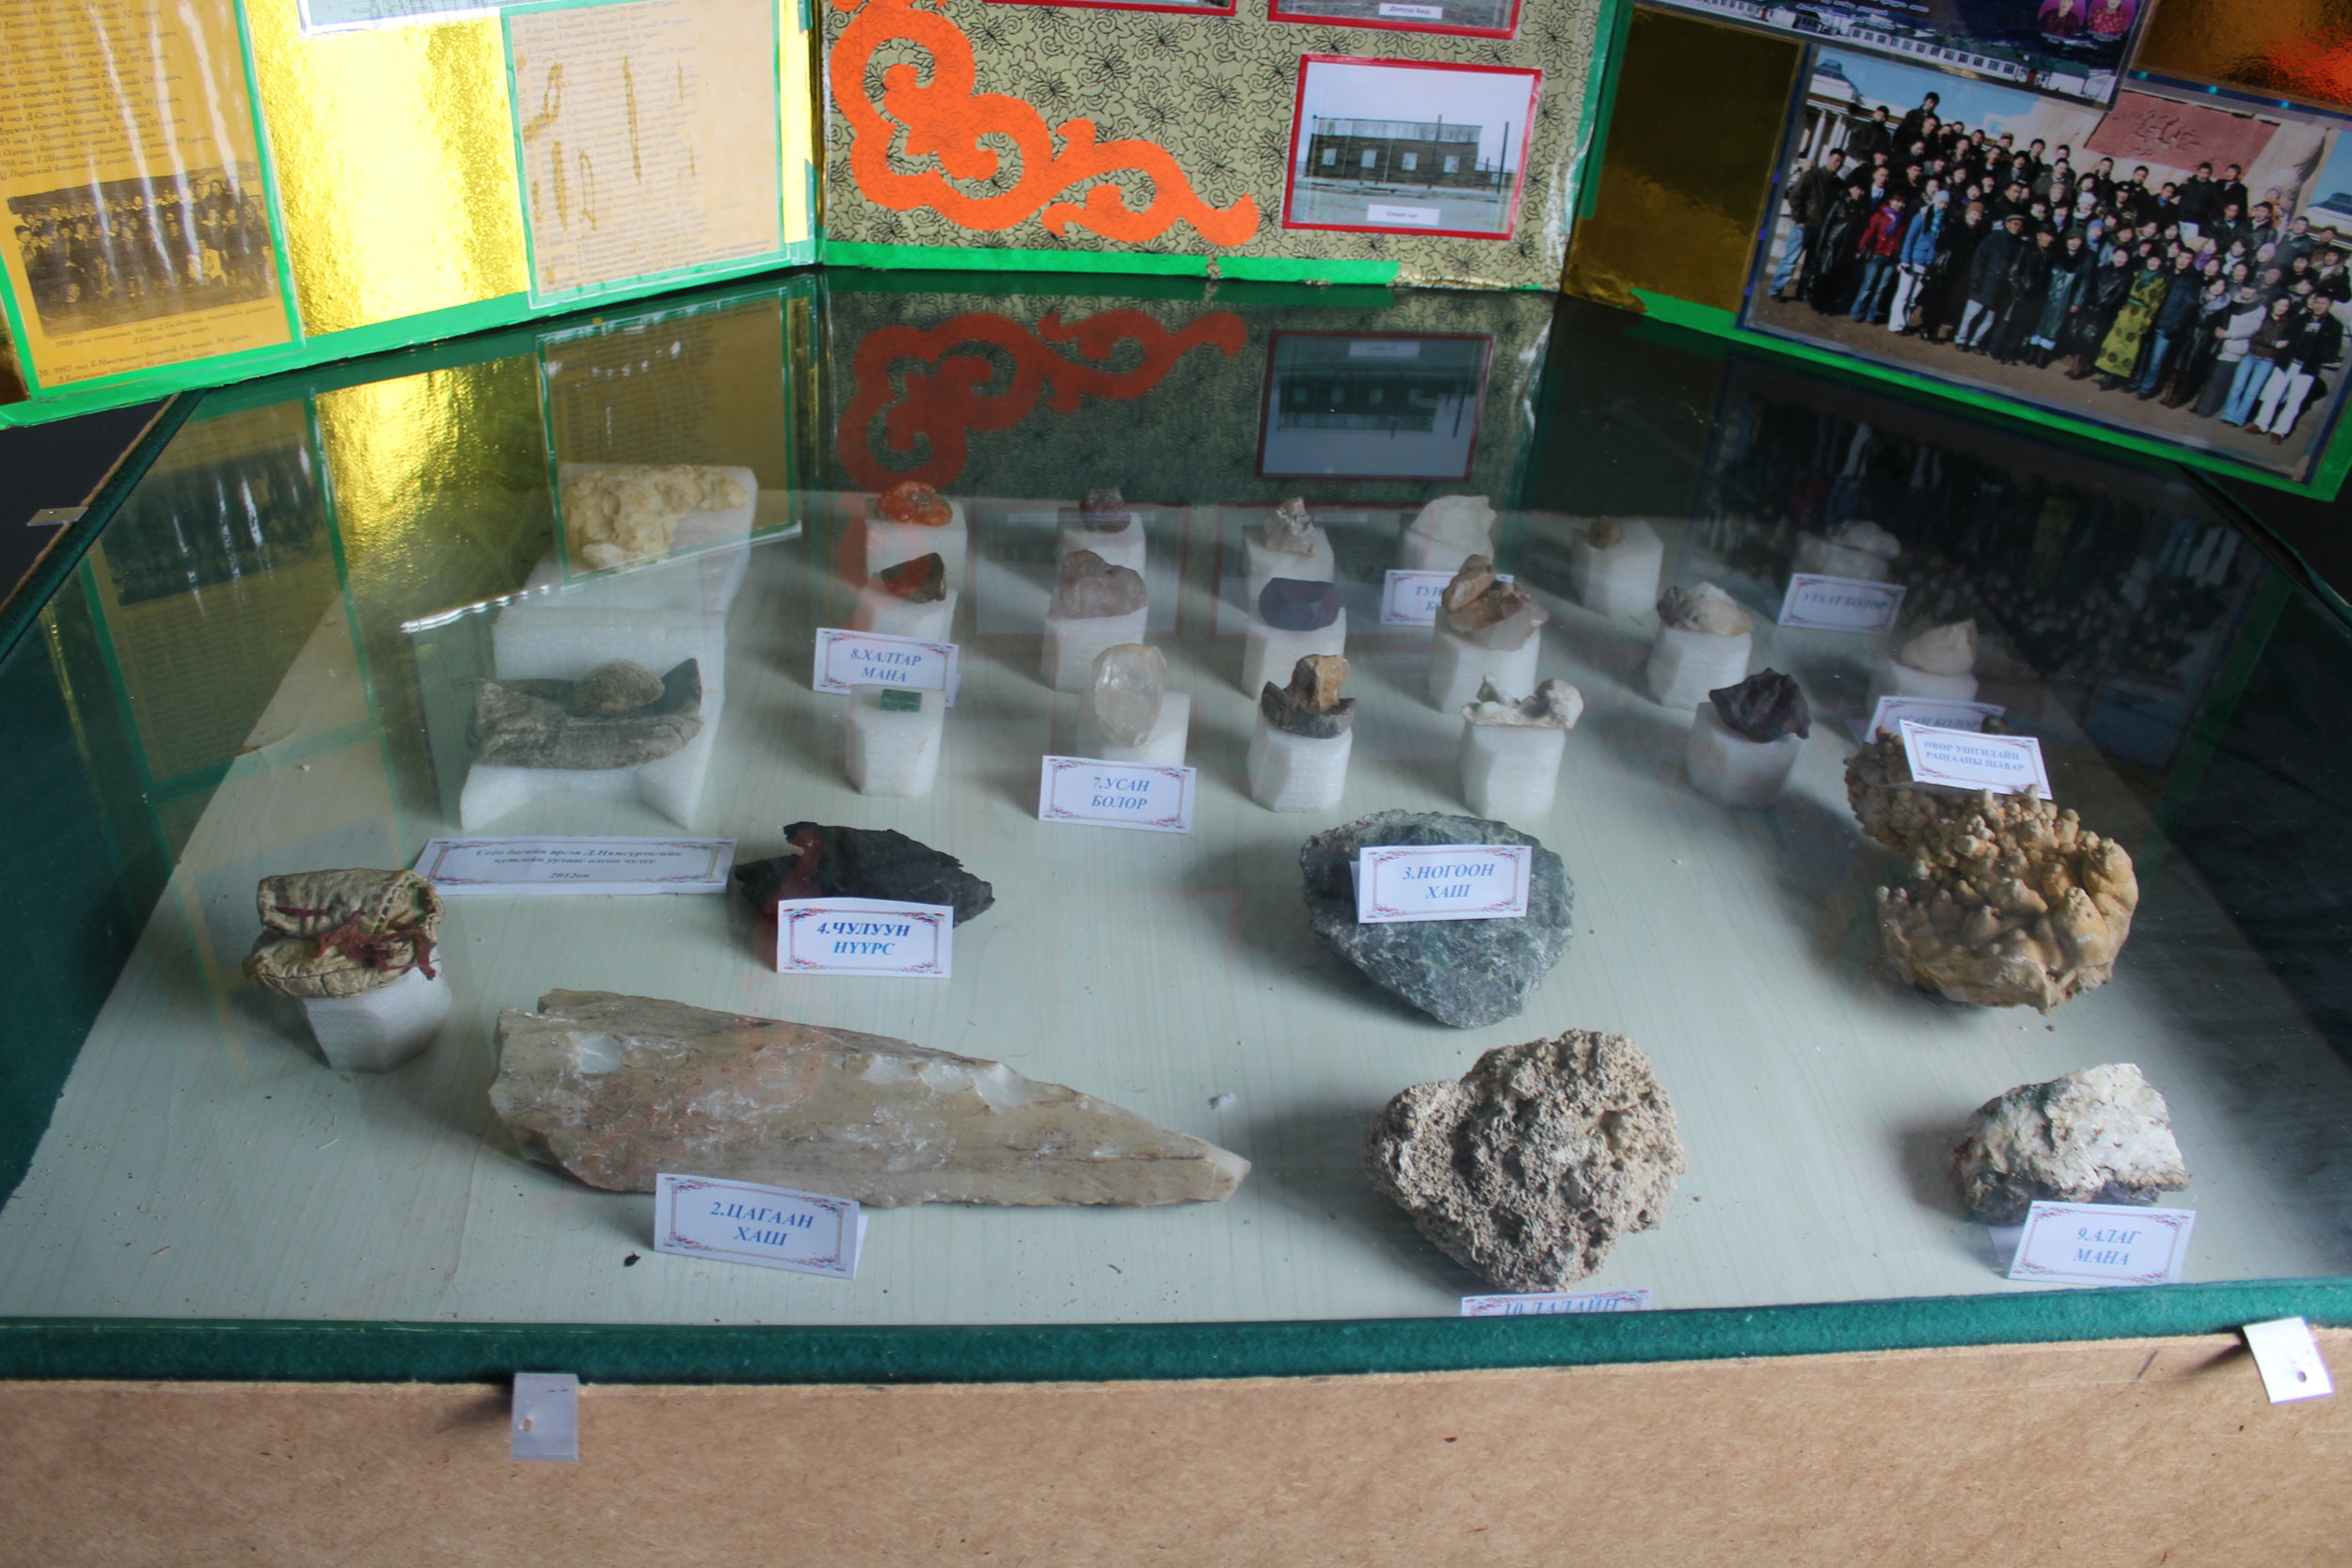 NOMAD Science works with local museums to provide bi-lingual displays